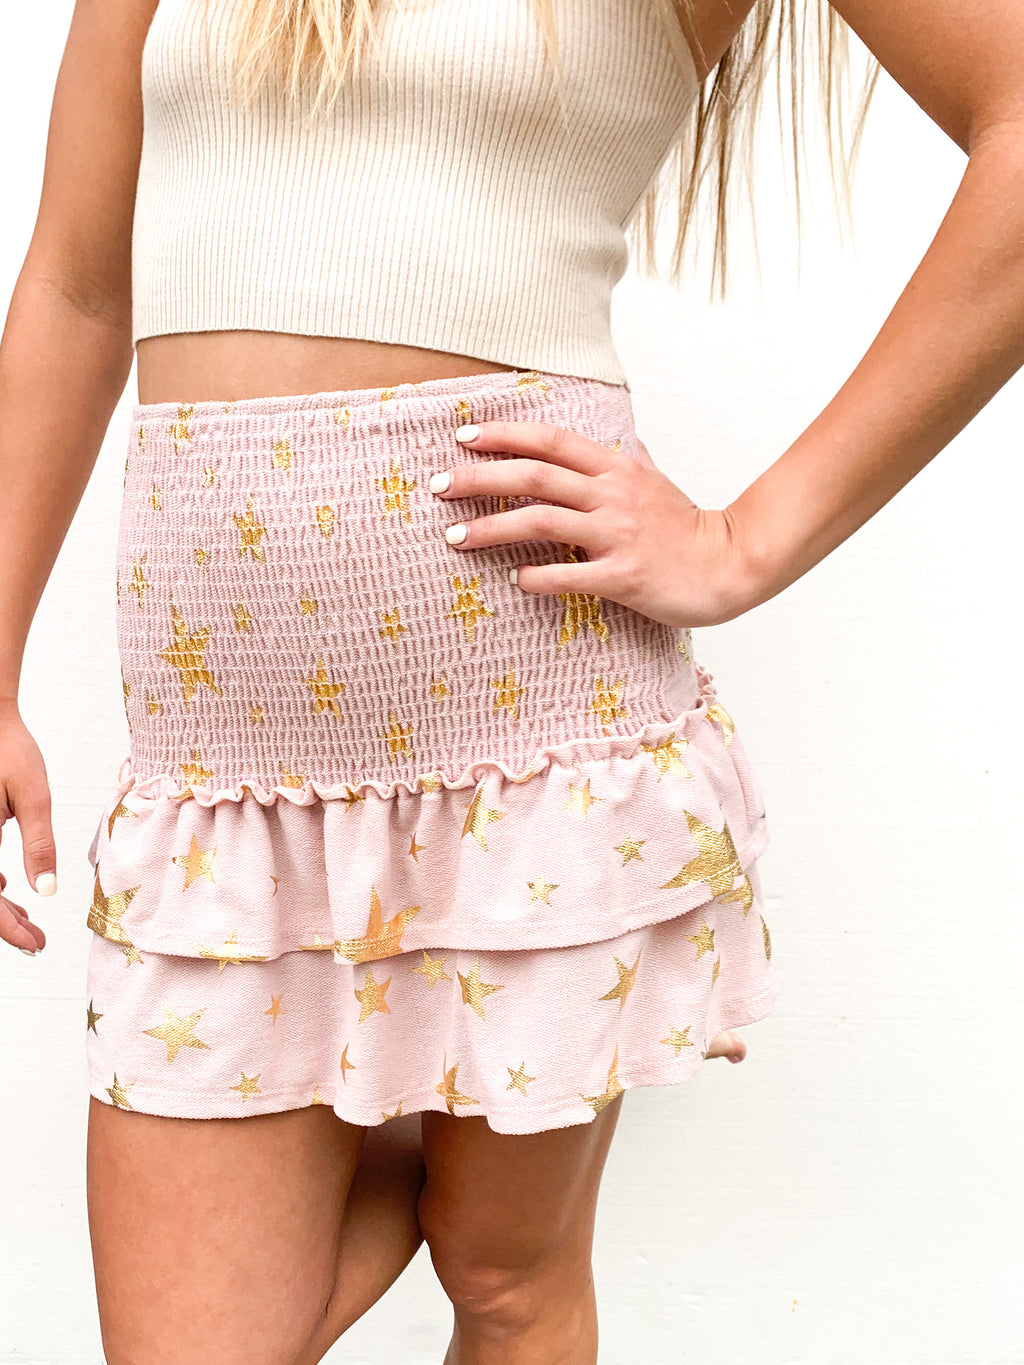 STAR FOIL SMOCKING KNIT SKIRT